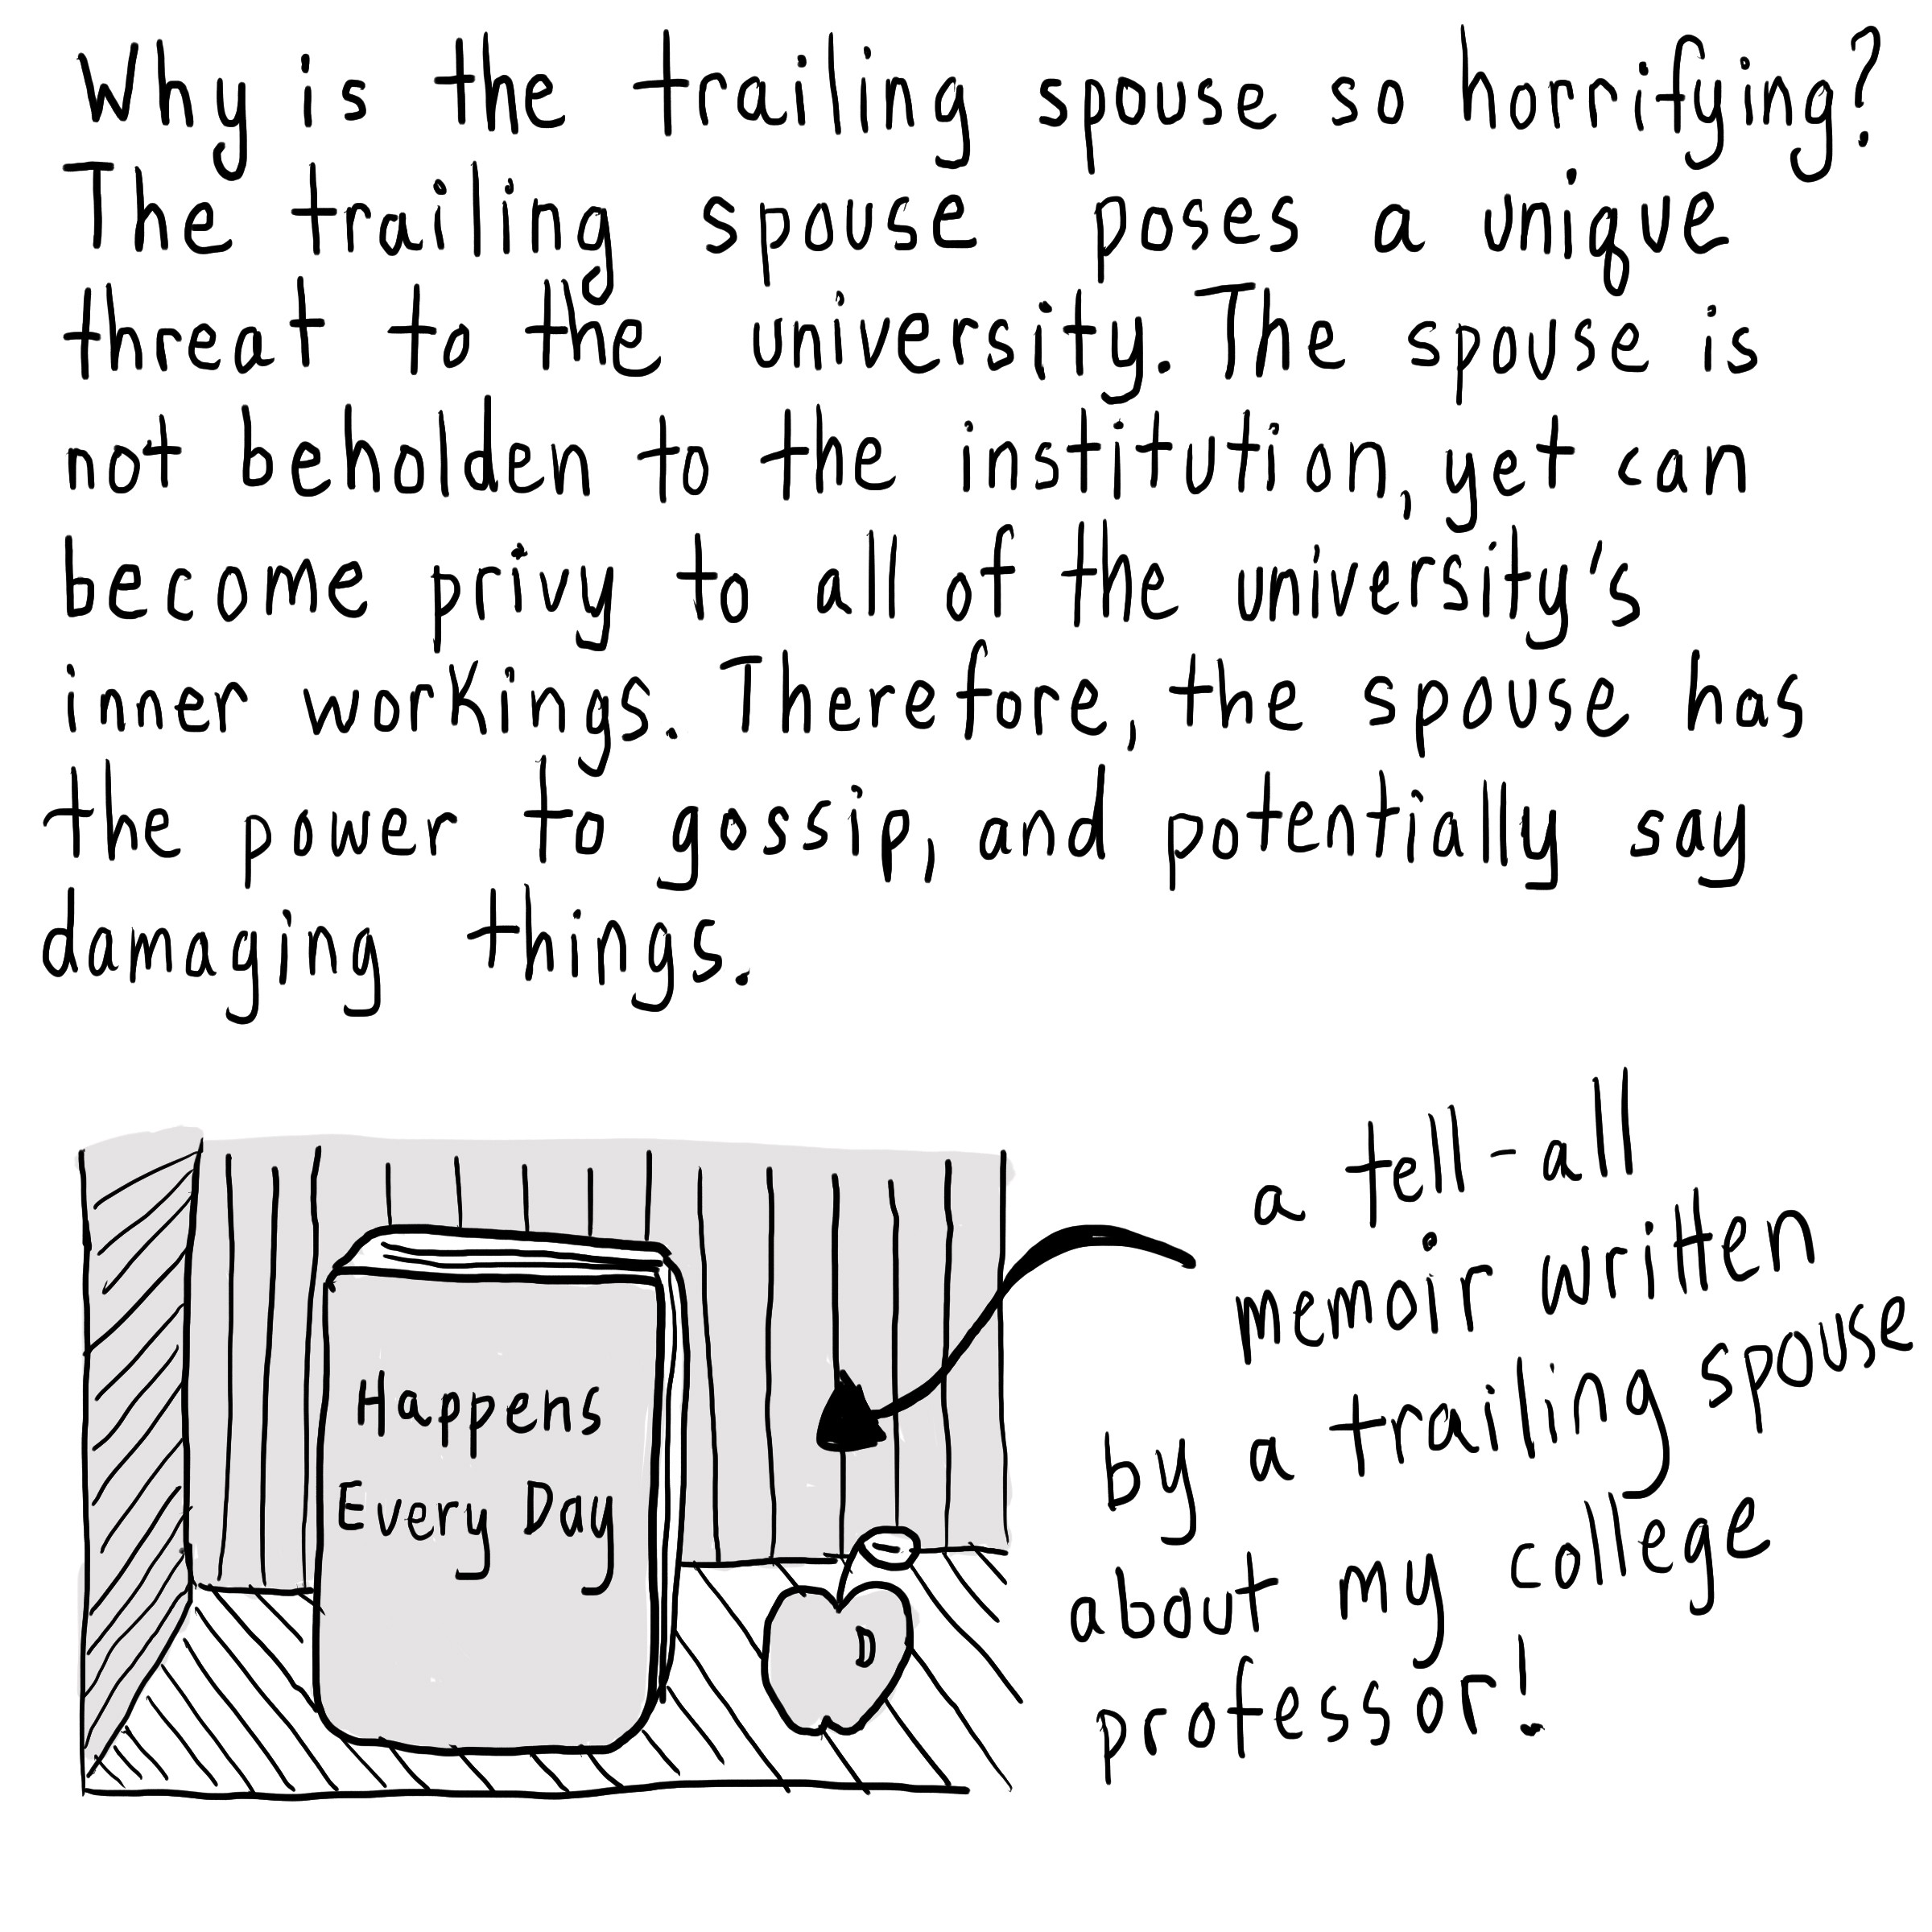 "Text: Why is the trailing spouse so horrifying? The trailing spouse poses as unique threat to the university. The spouse is not beholden to the institution, yet can become privy to all of the university's inner workings. Therefore, the spouse has the power to gossip and potentially say damaging things. [Book titled ""Happens Every Day""—labeled ""A tell-all memoir written by a trailing spouse about my college professor!"""